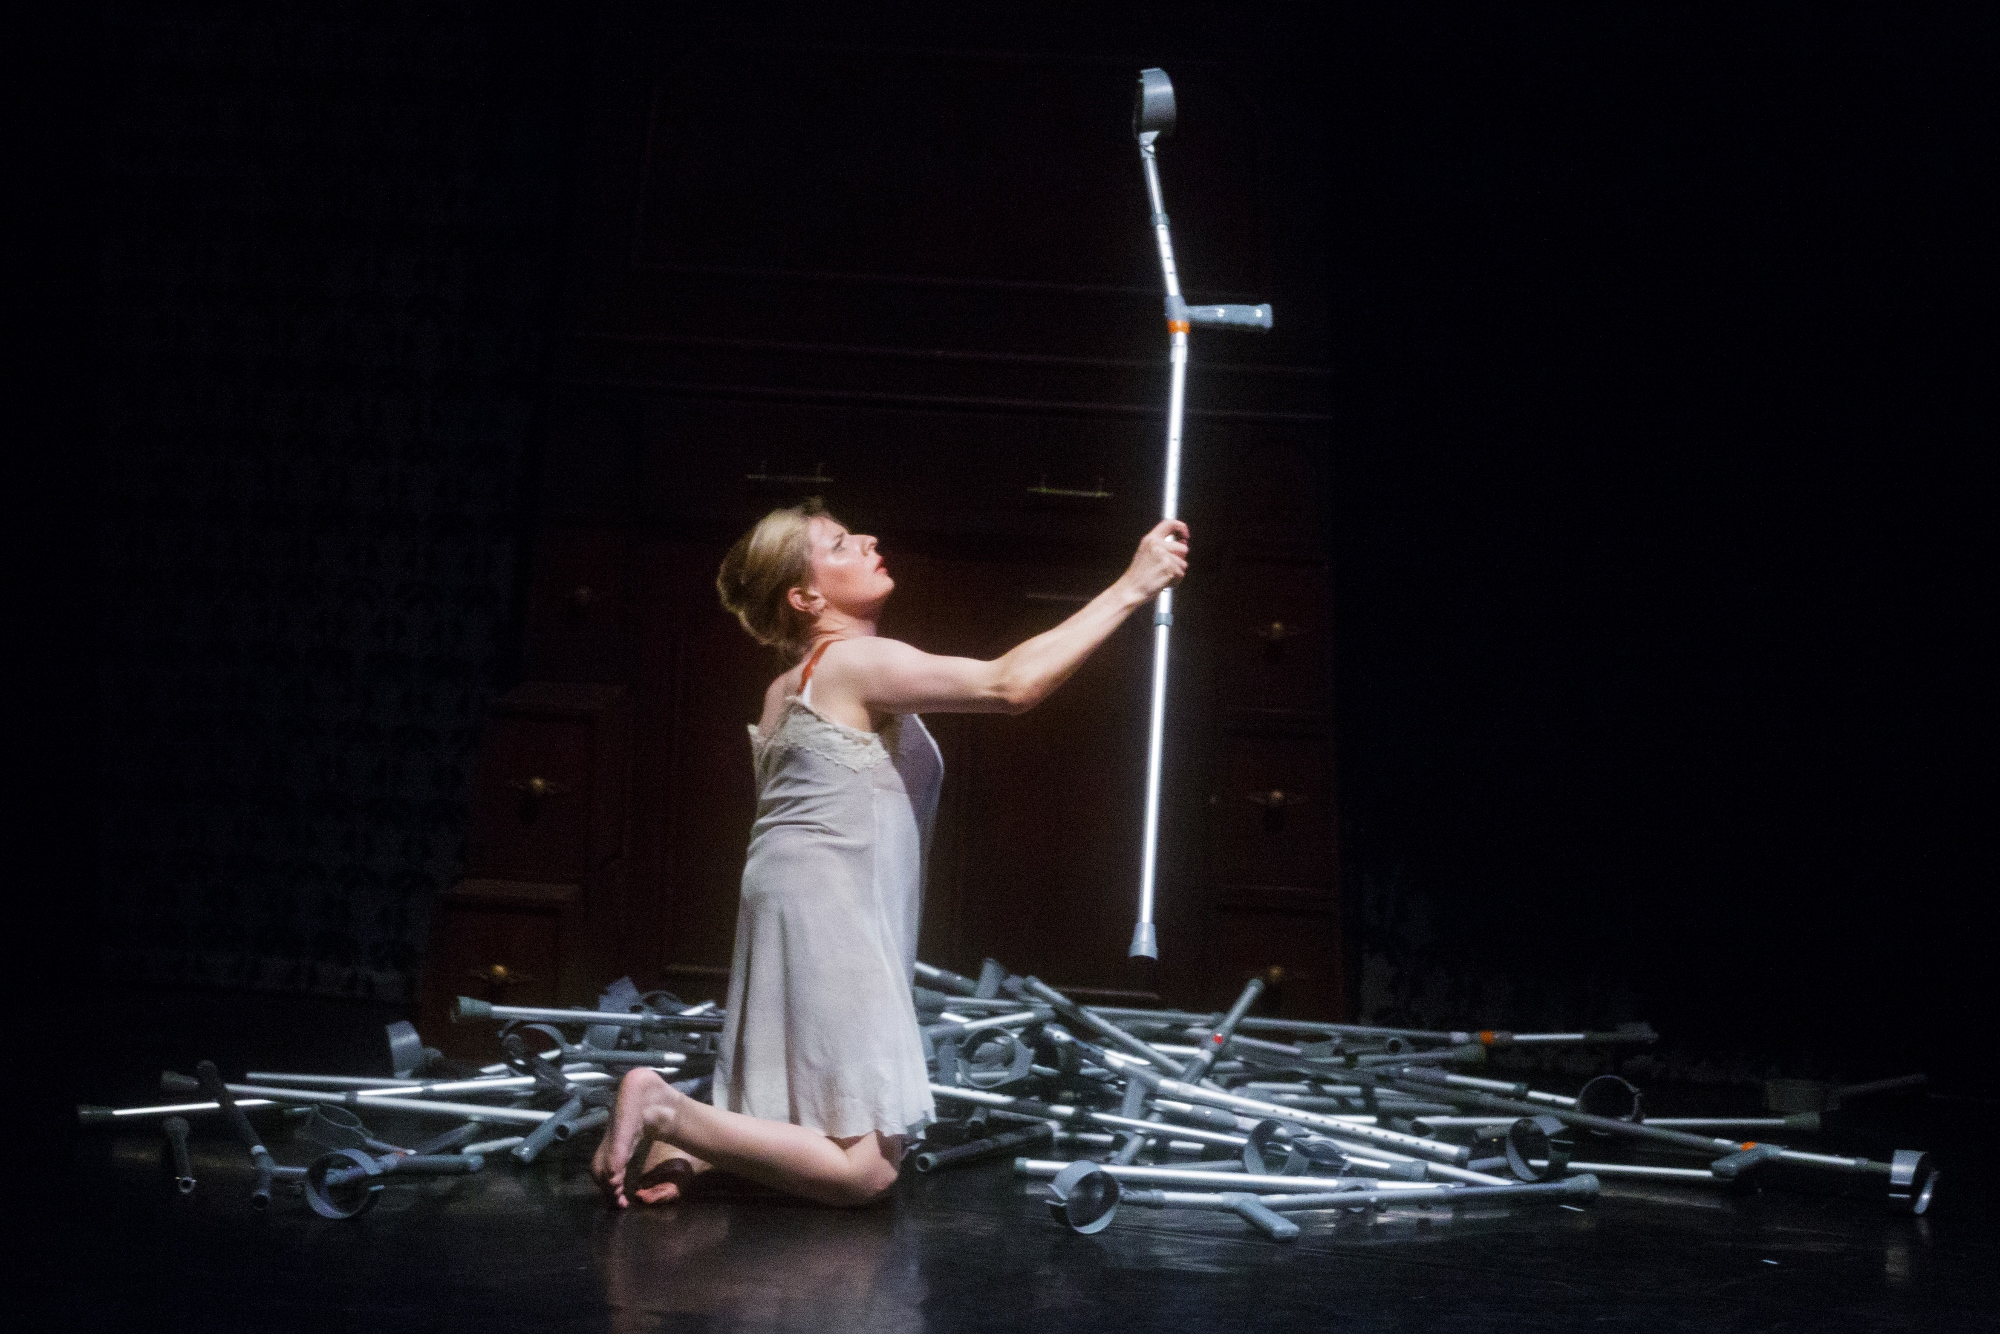 Claire Cunningham in 'Ménage à Trois' at the Tramway Theatre, Glasgow (Dress Rehearsal August 23rd, 2012)